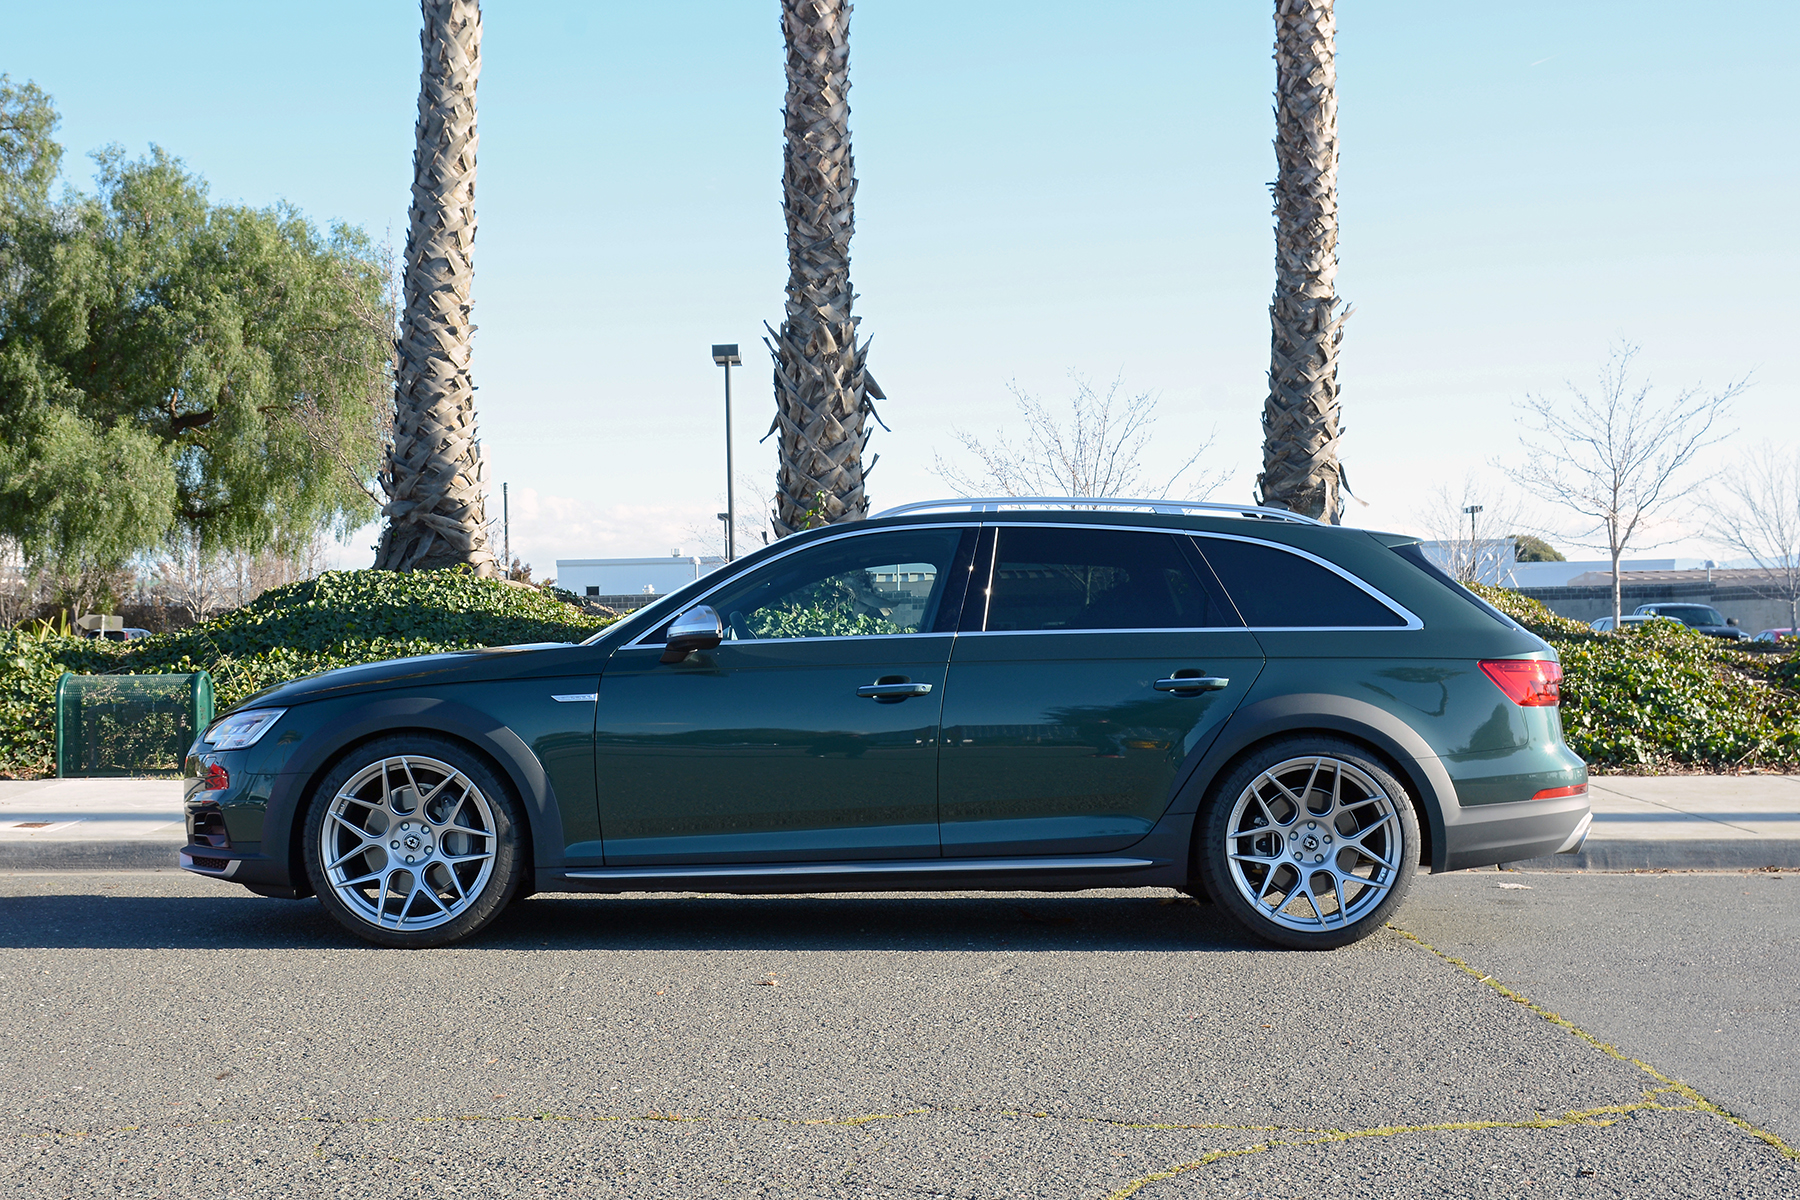 audi com nj vwvortex allroad atlas automatic showthread gray parting black out php